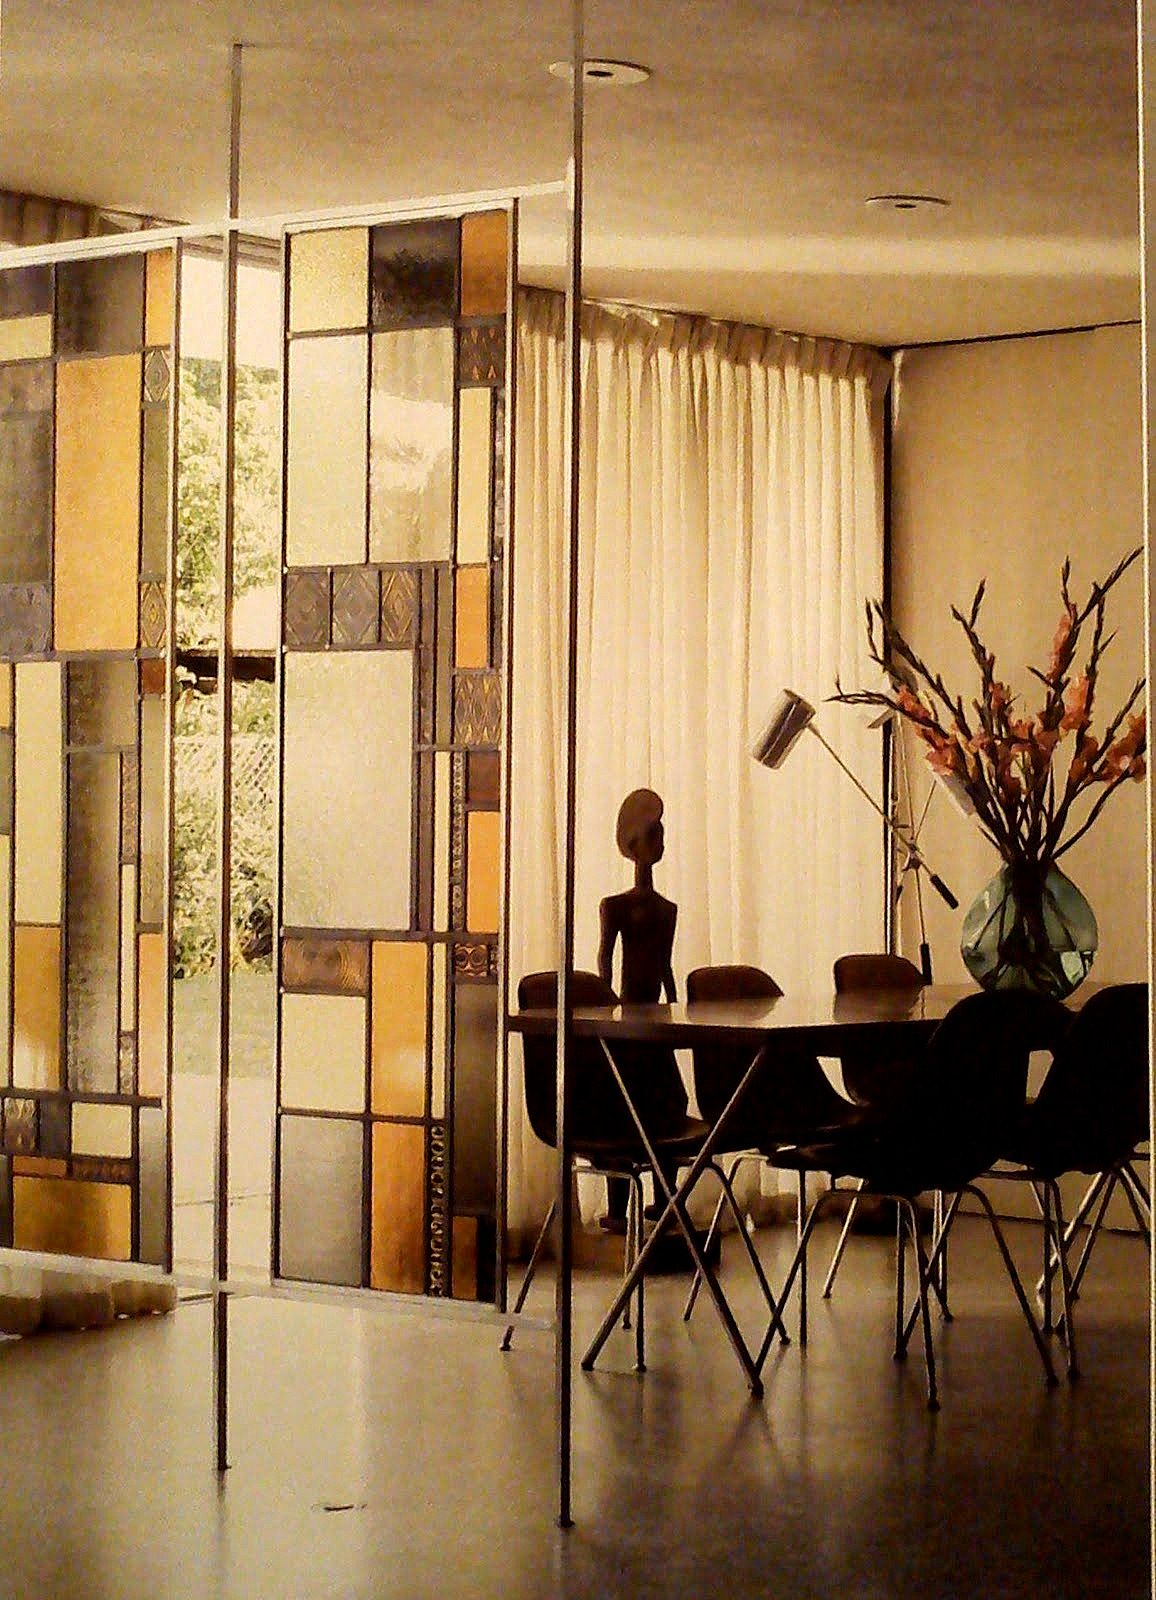 stained glass room divider a la mondrian via @rikki reeves | the